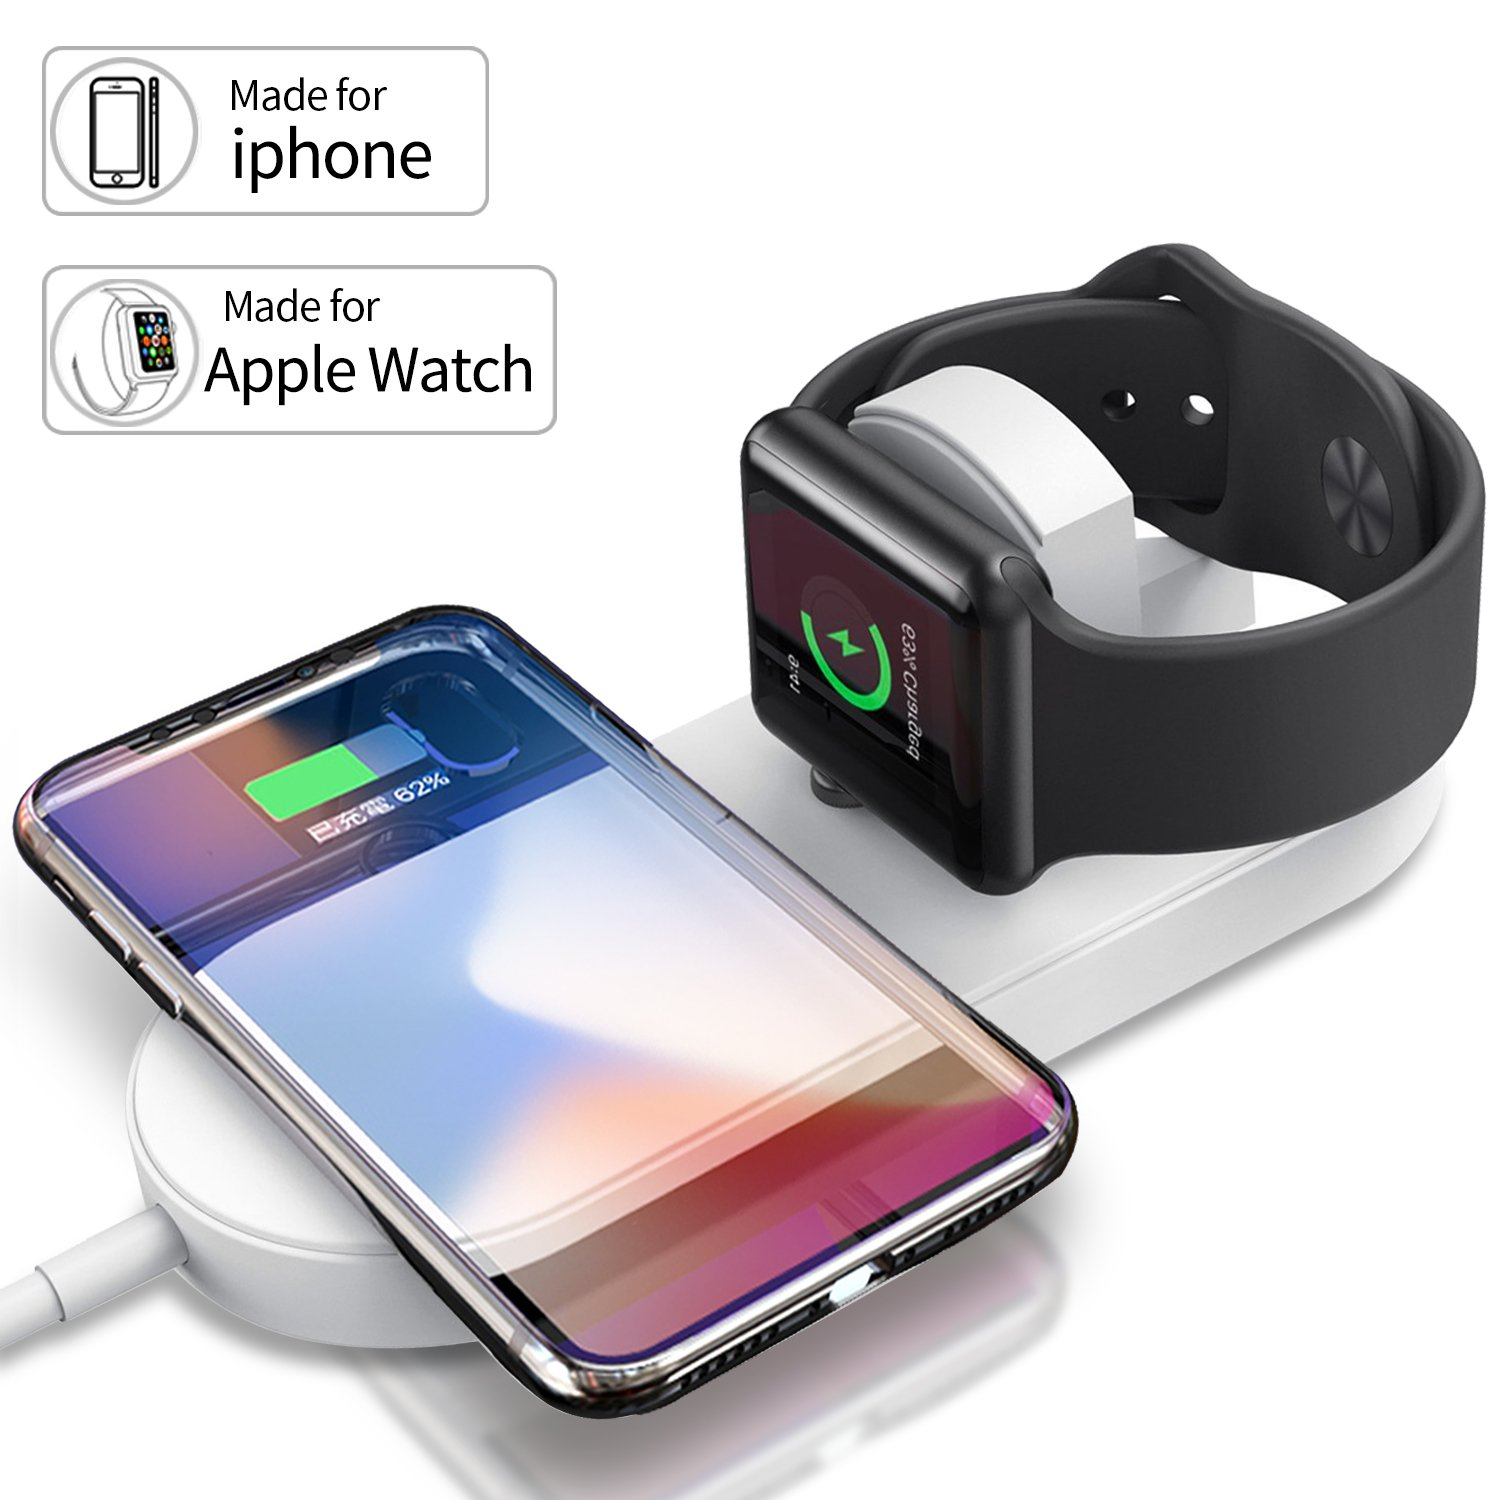 best loved 75e68 96ad6 Apple Watch Charger,Soundsnow iPhone Wireless Charger,Apple Watch Charging  Stand, Ultra-thin 2 in 1 Qi Wireless Charging Pad Stand for Apple Watch ...